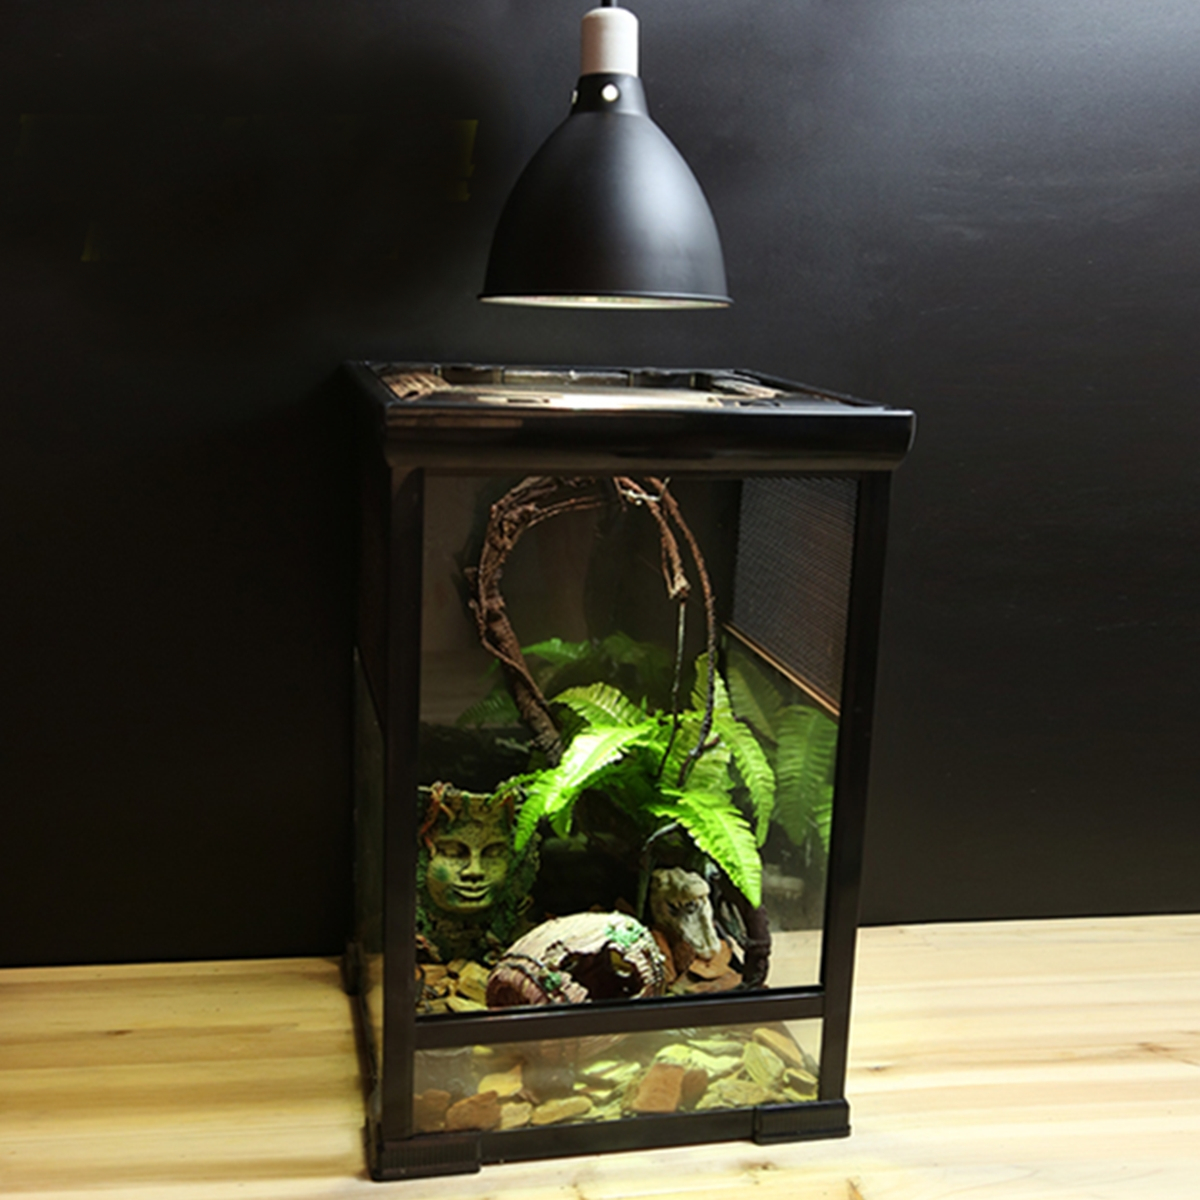 tortoise lighting. E27 Ceramic Heat UV UVB Lamp Light Holder For Aquarium Amphibians Reptile Tortoise Lampshade With Switch-in Covers \u0026 Shades From Lights Lighting On A